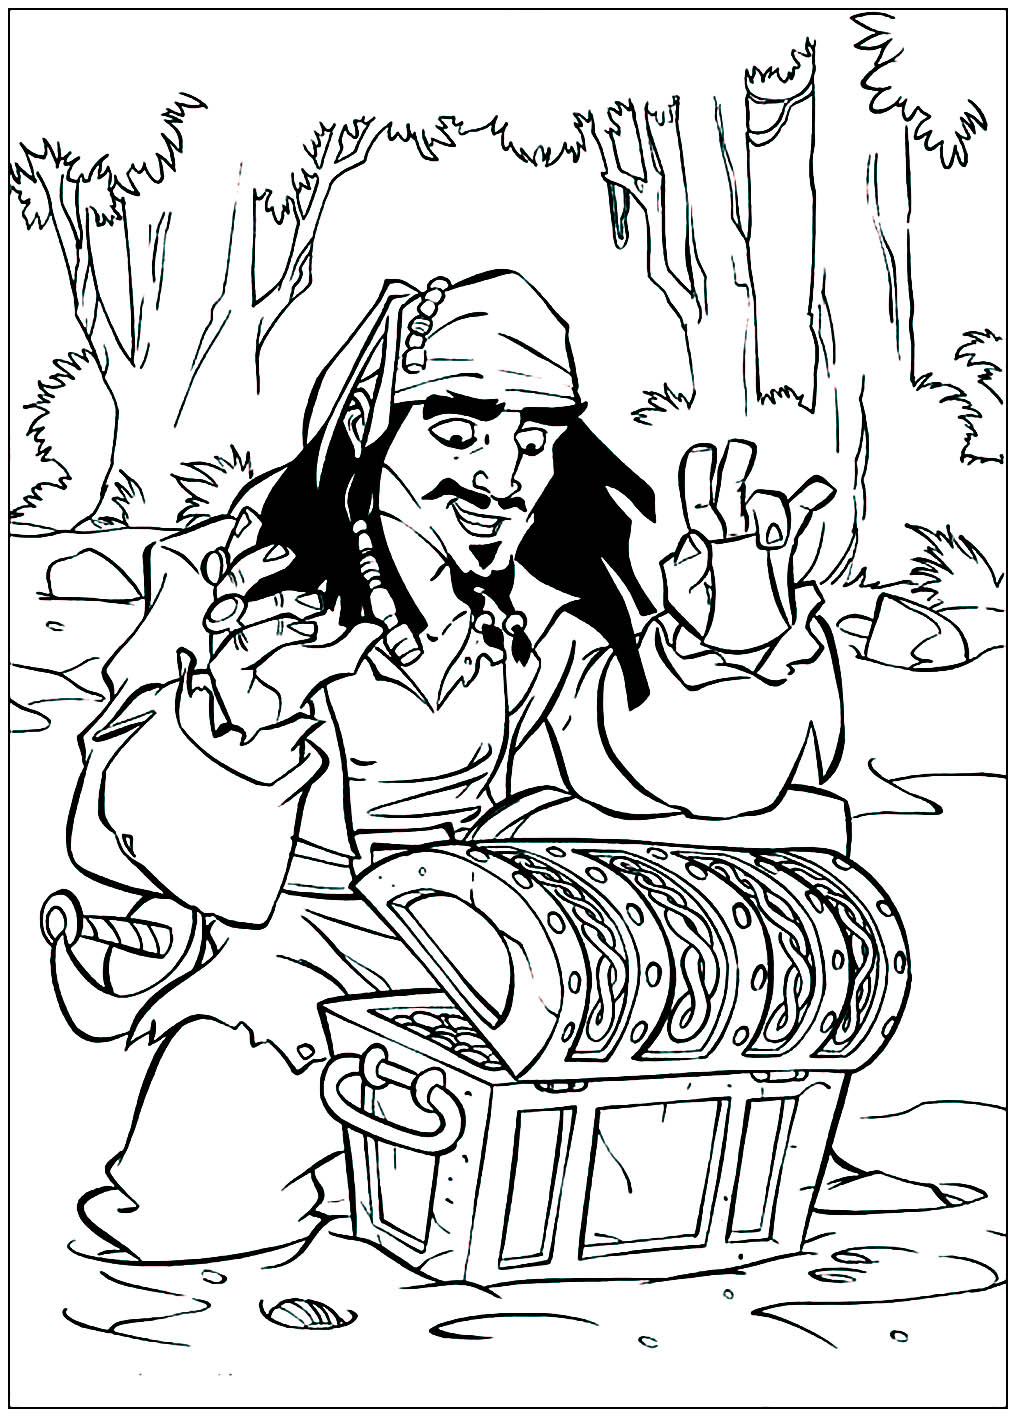 Funny Pirates of the Caribbean coloring page for kids